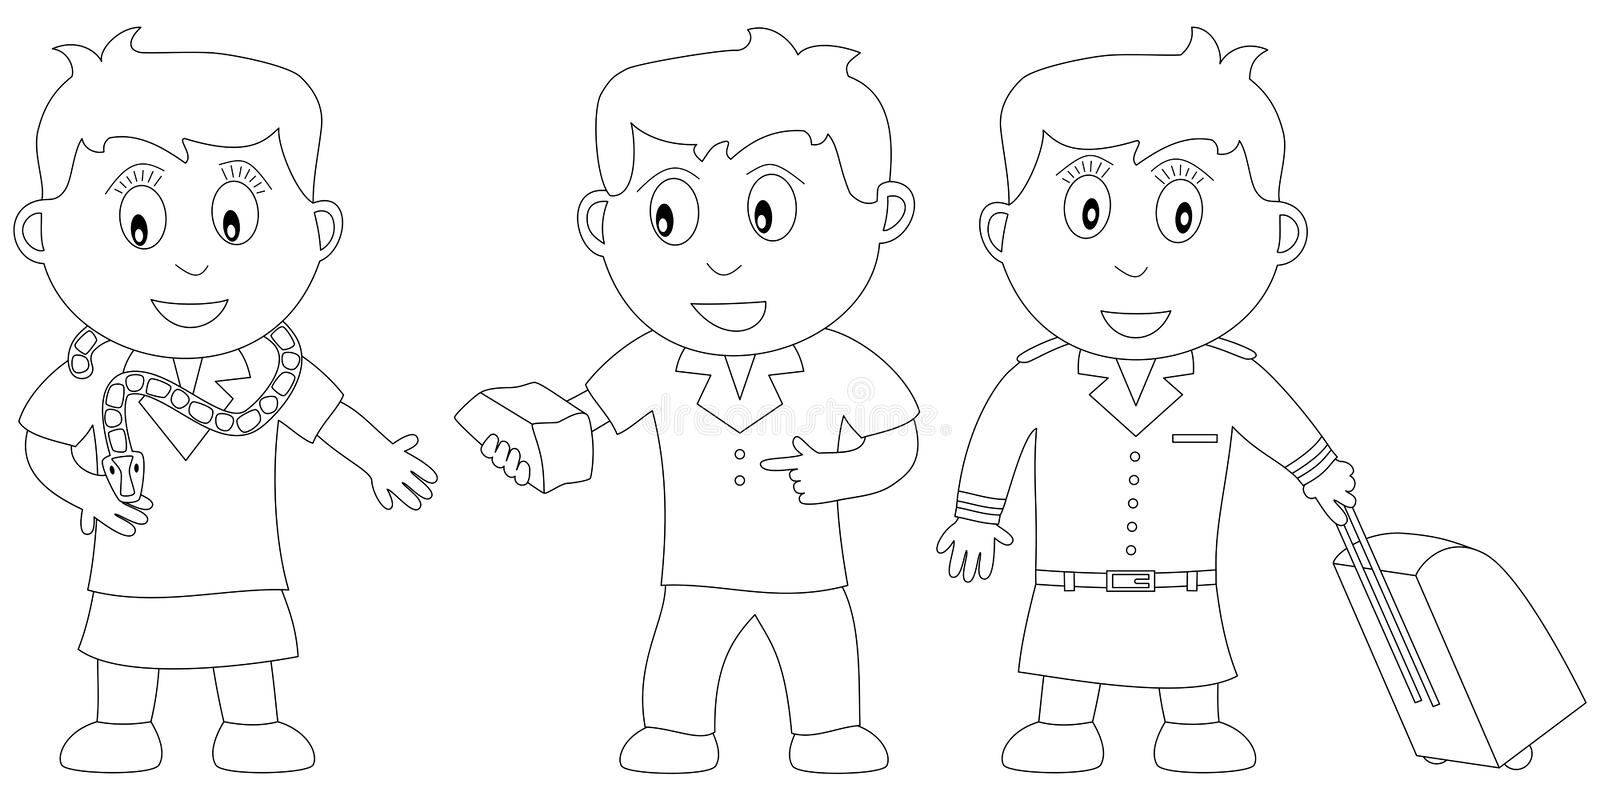 Coloring Book for Kids [14]